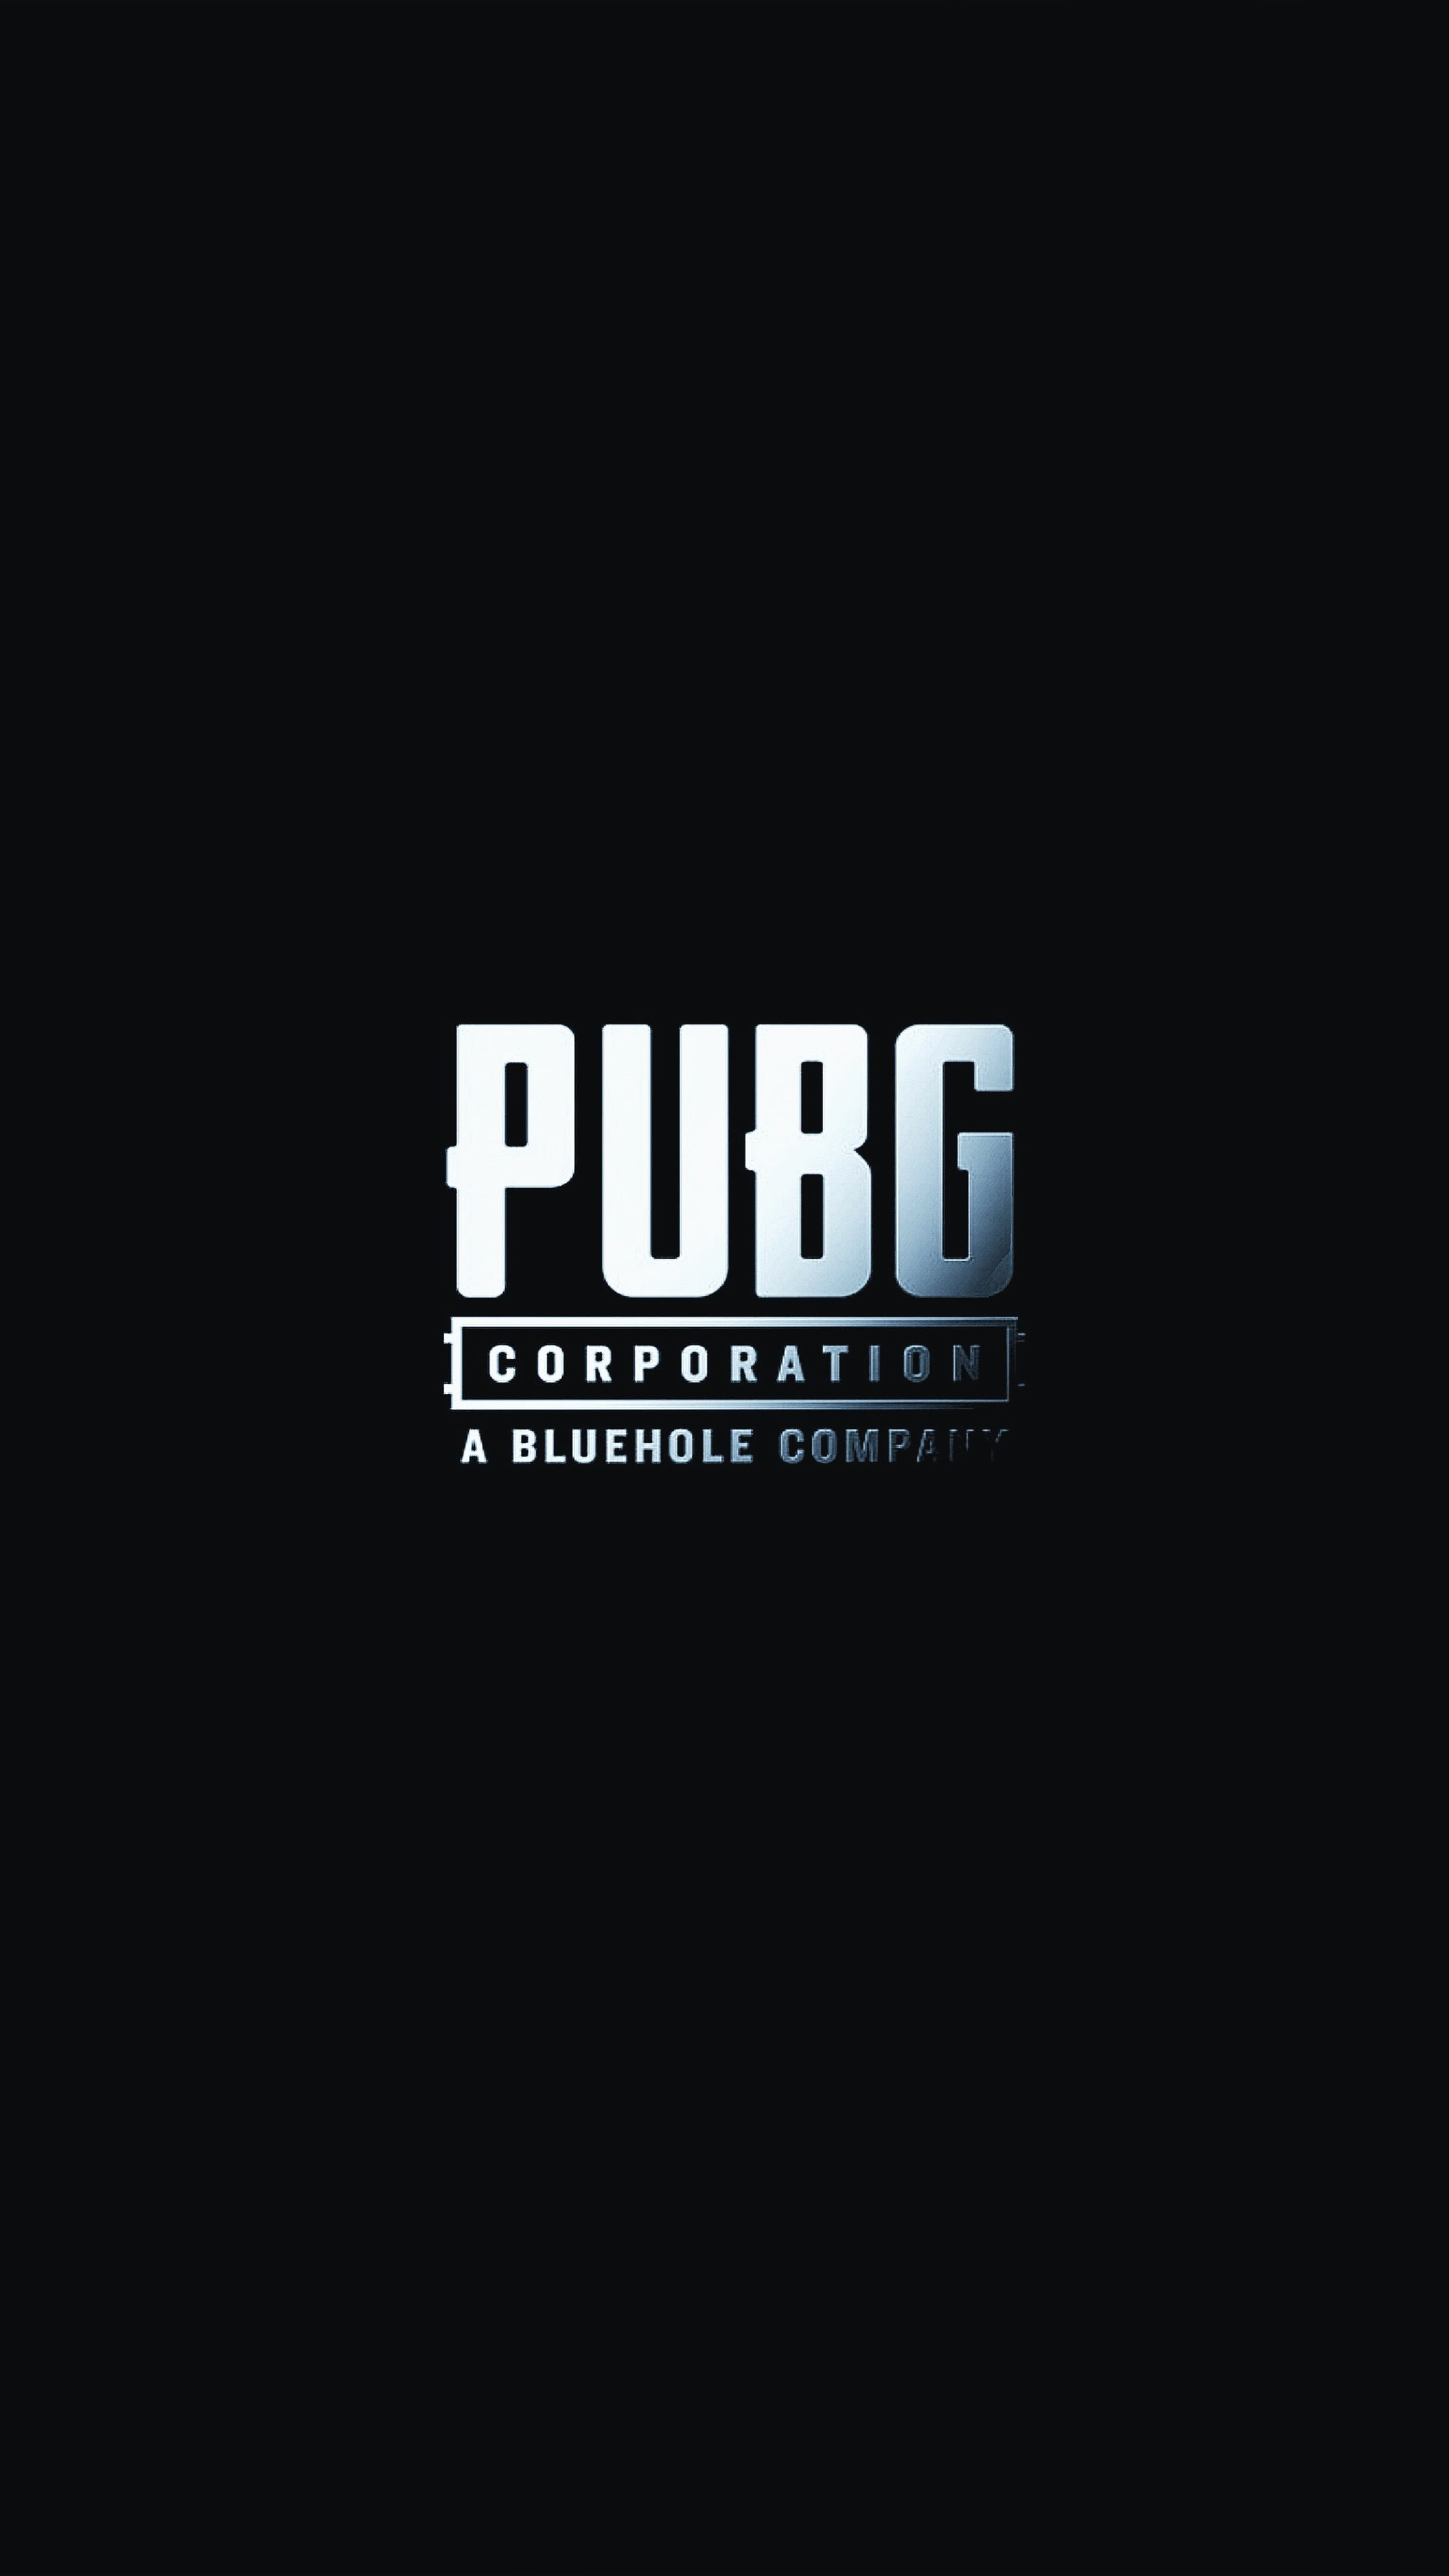 Download Pubg Corporation Game Opening Free Pure 4k Ultra Hd Referensi Desain Gambar Bola Basket Gaya Poster